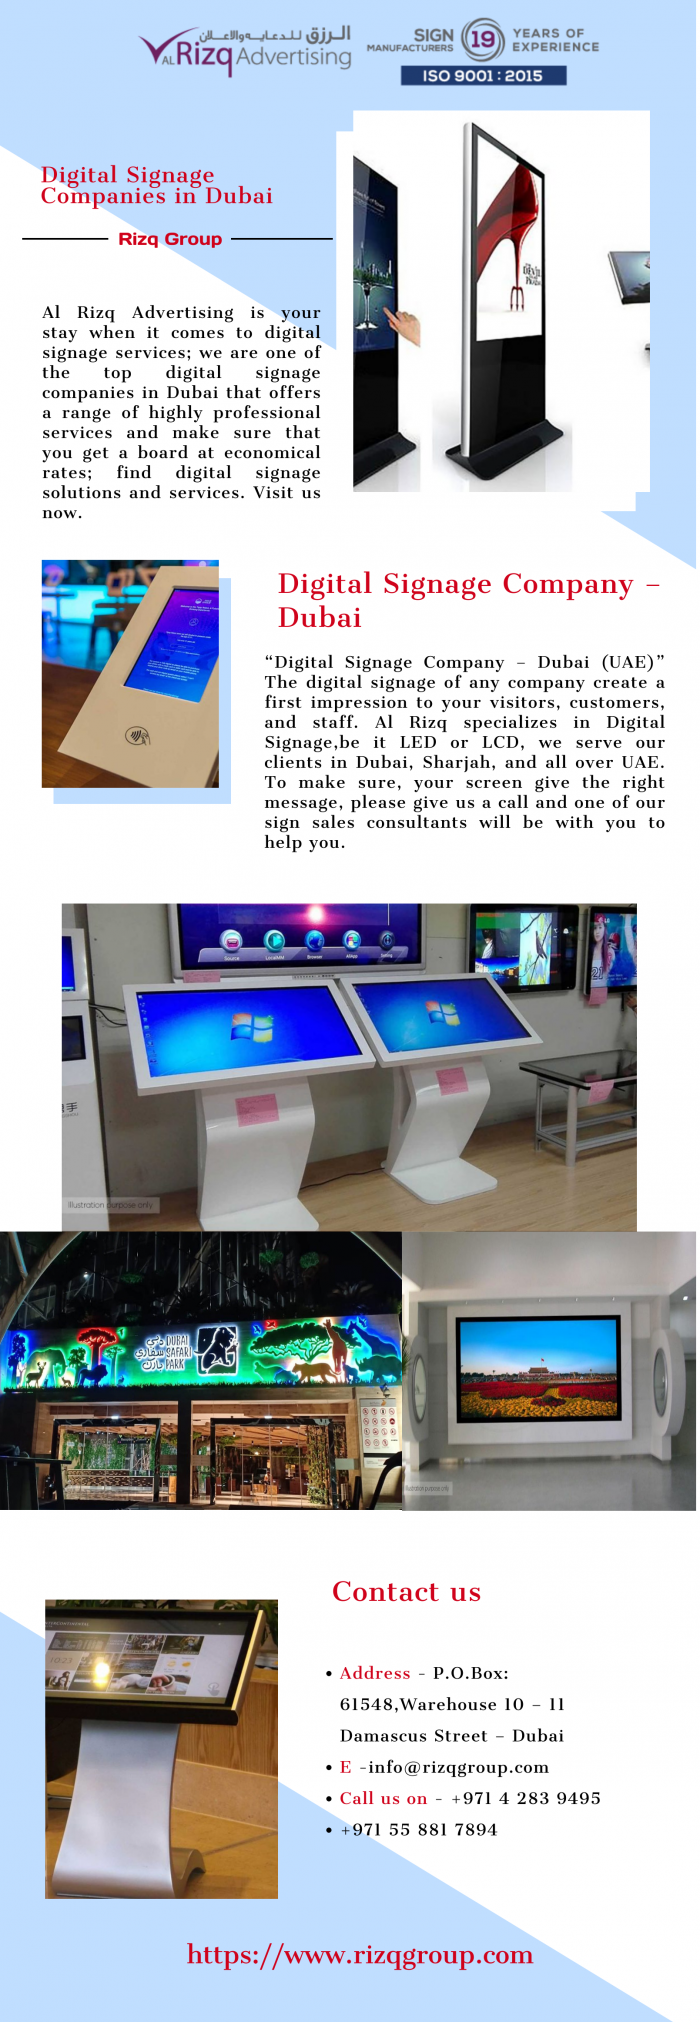 Get Top Digital Signage Companies in Dubai | Rizq Group